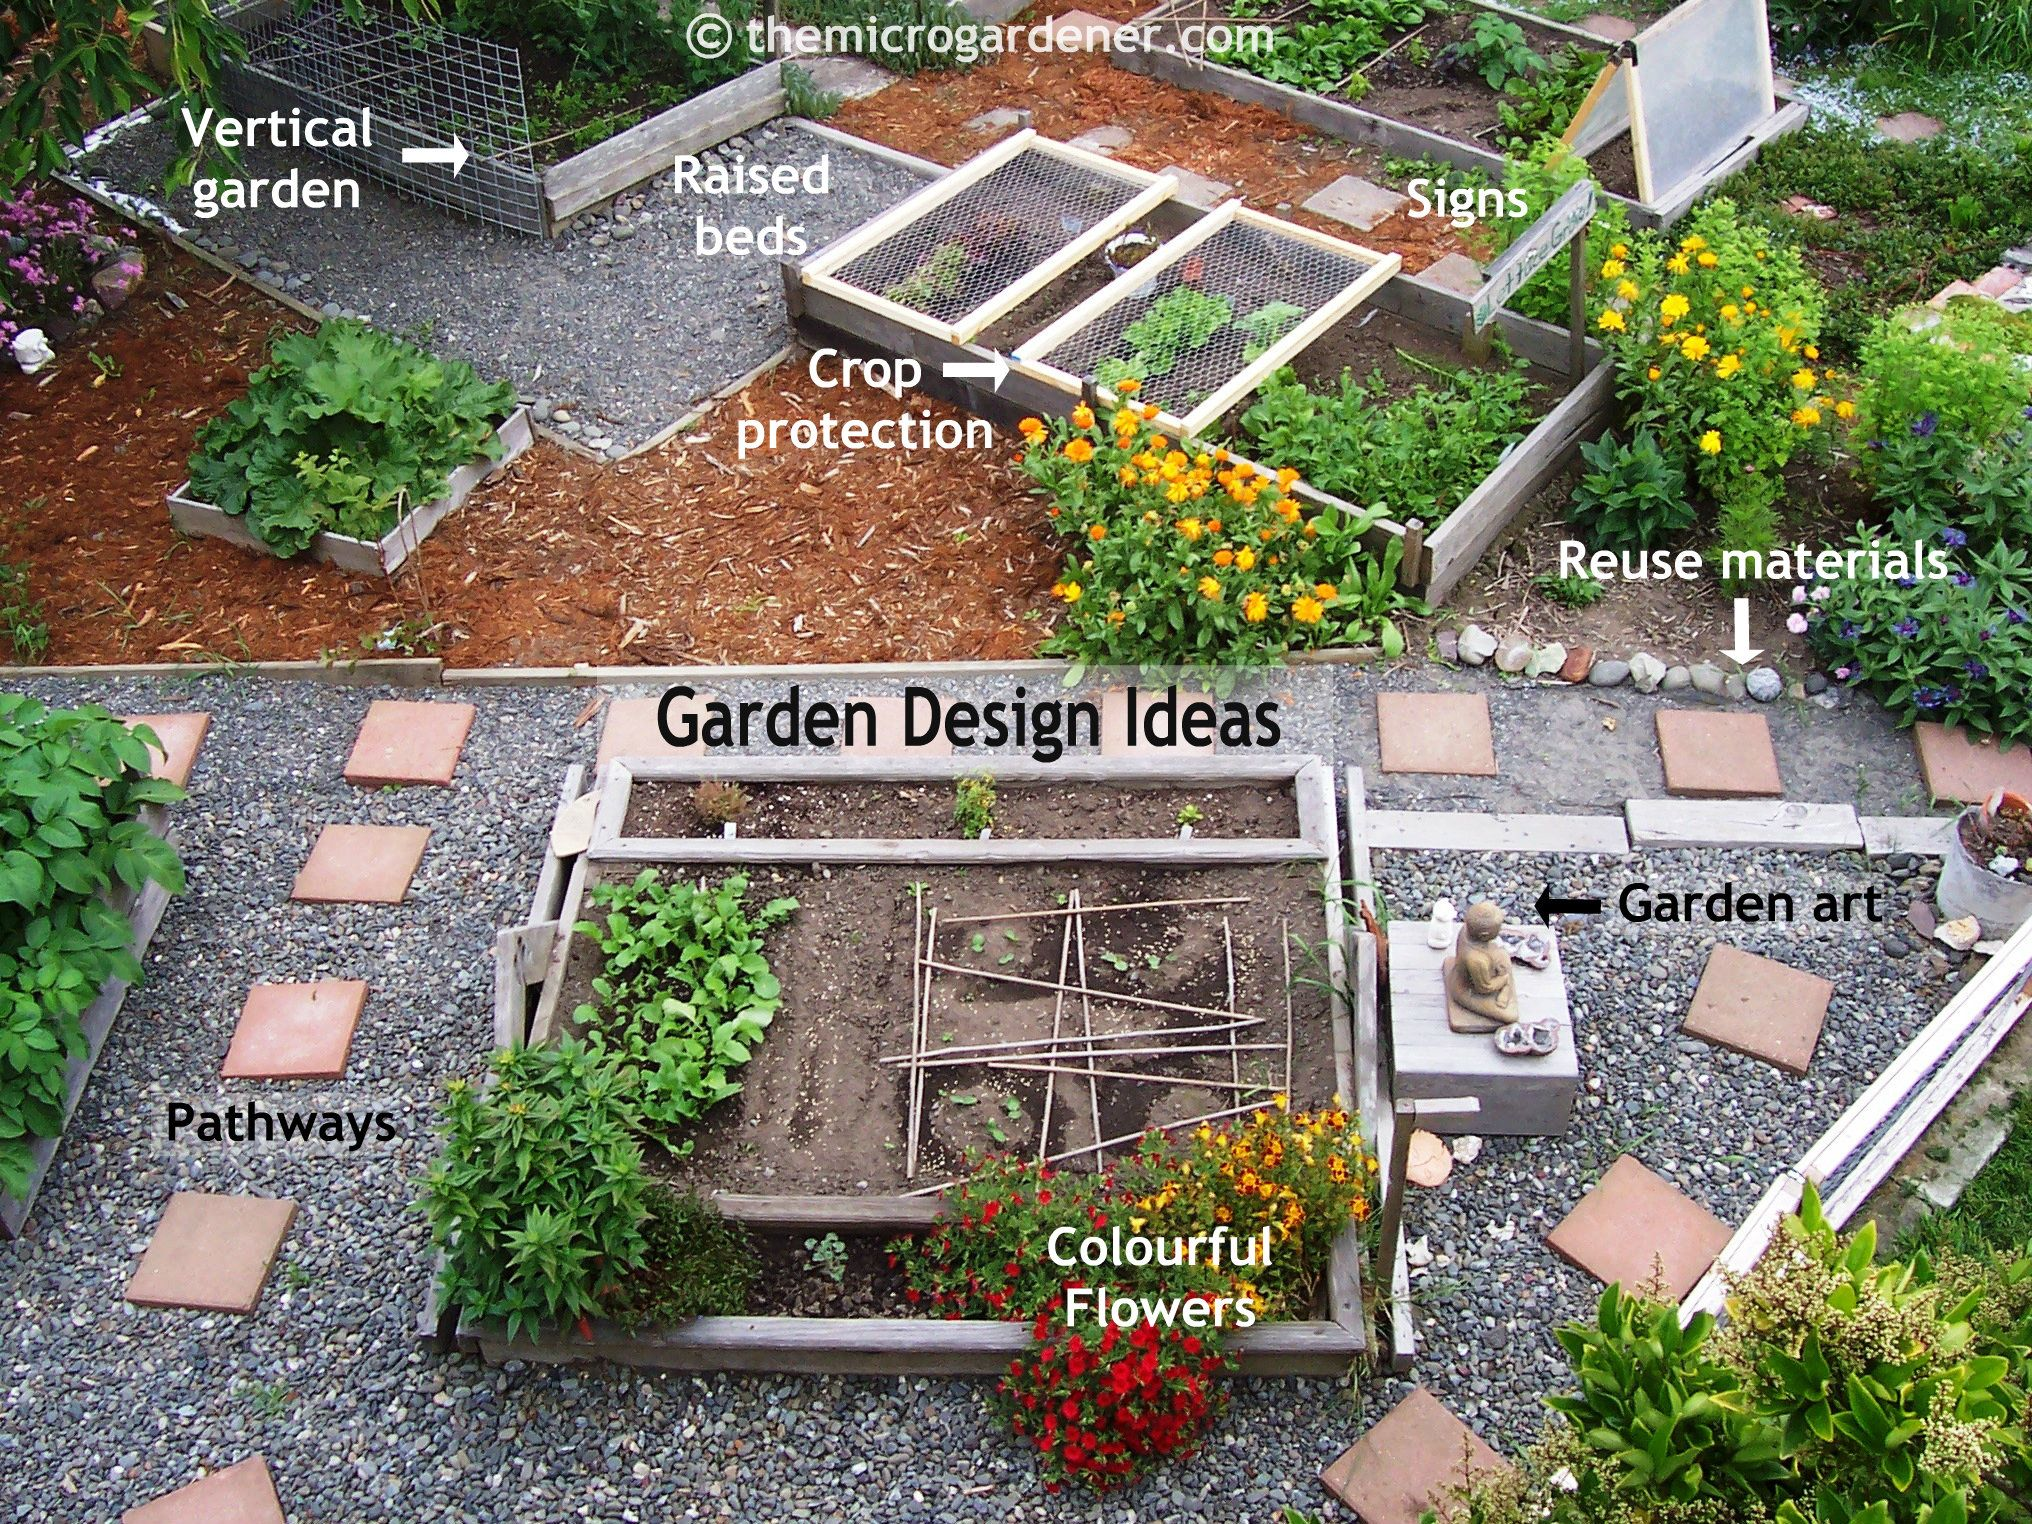 Kitchen Garden Design raised vegetable beds are simple to make and easy to maintain use this method and Small Garden Design Got Limited Space Or Planning A Kitchen Garden If You Want